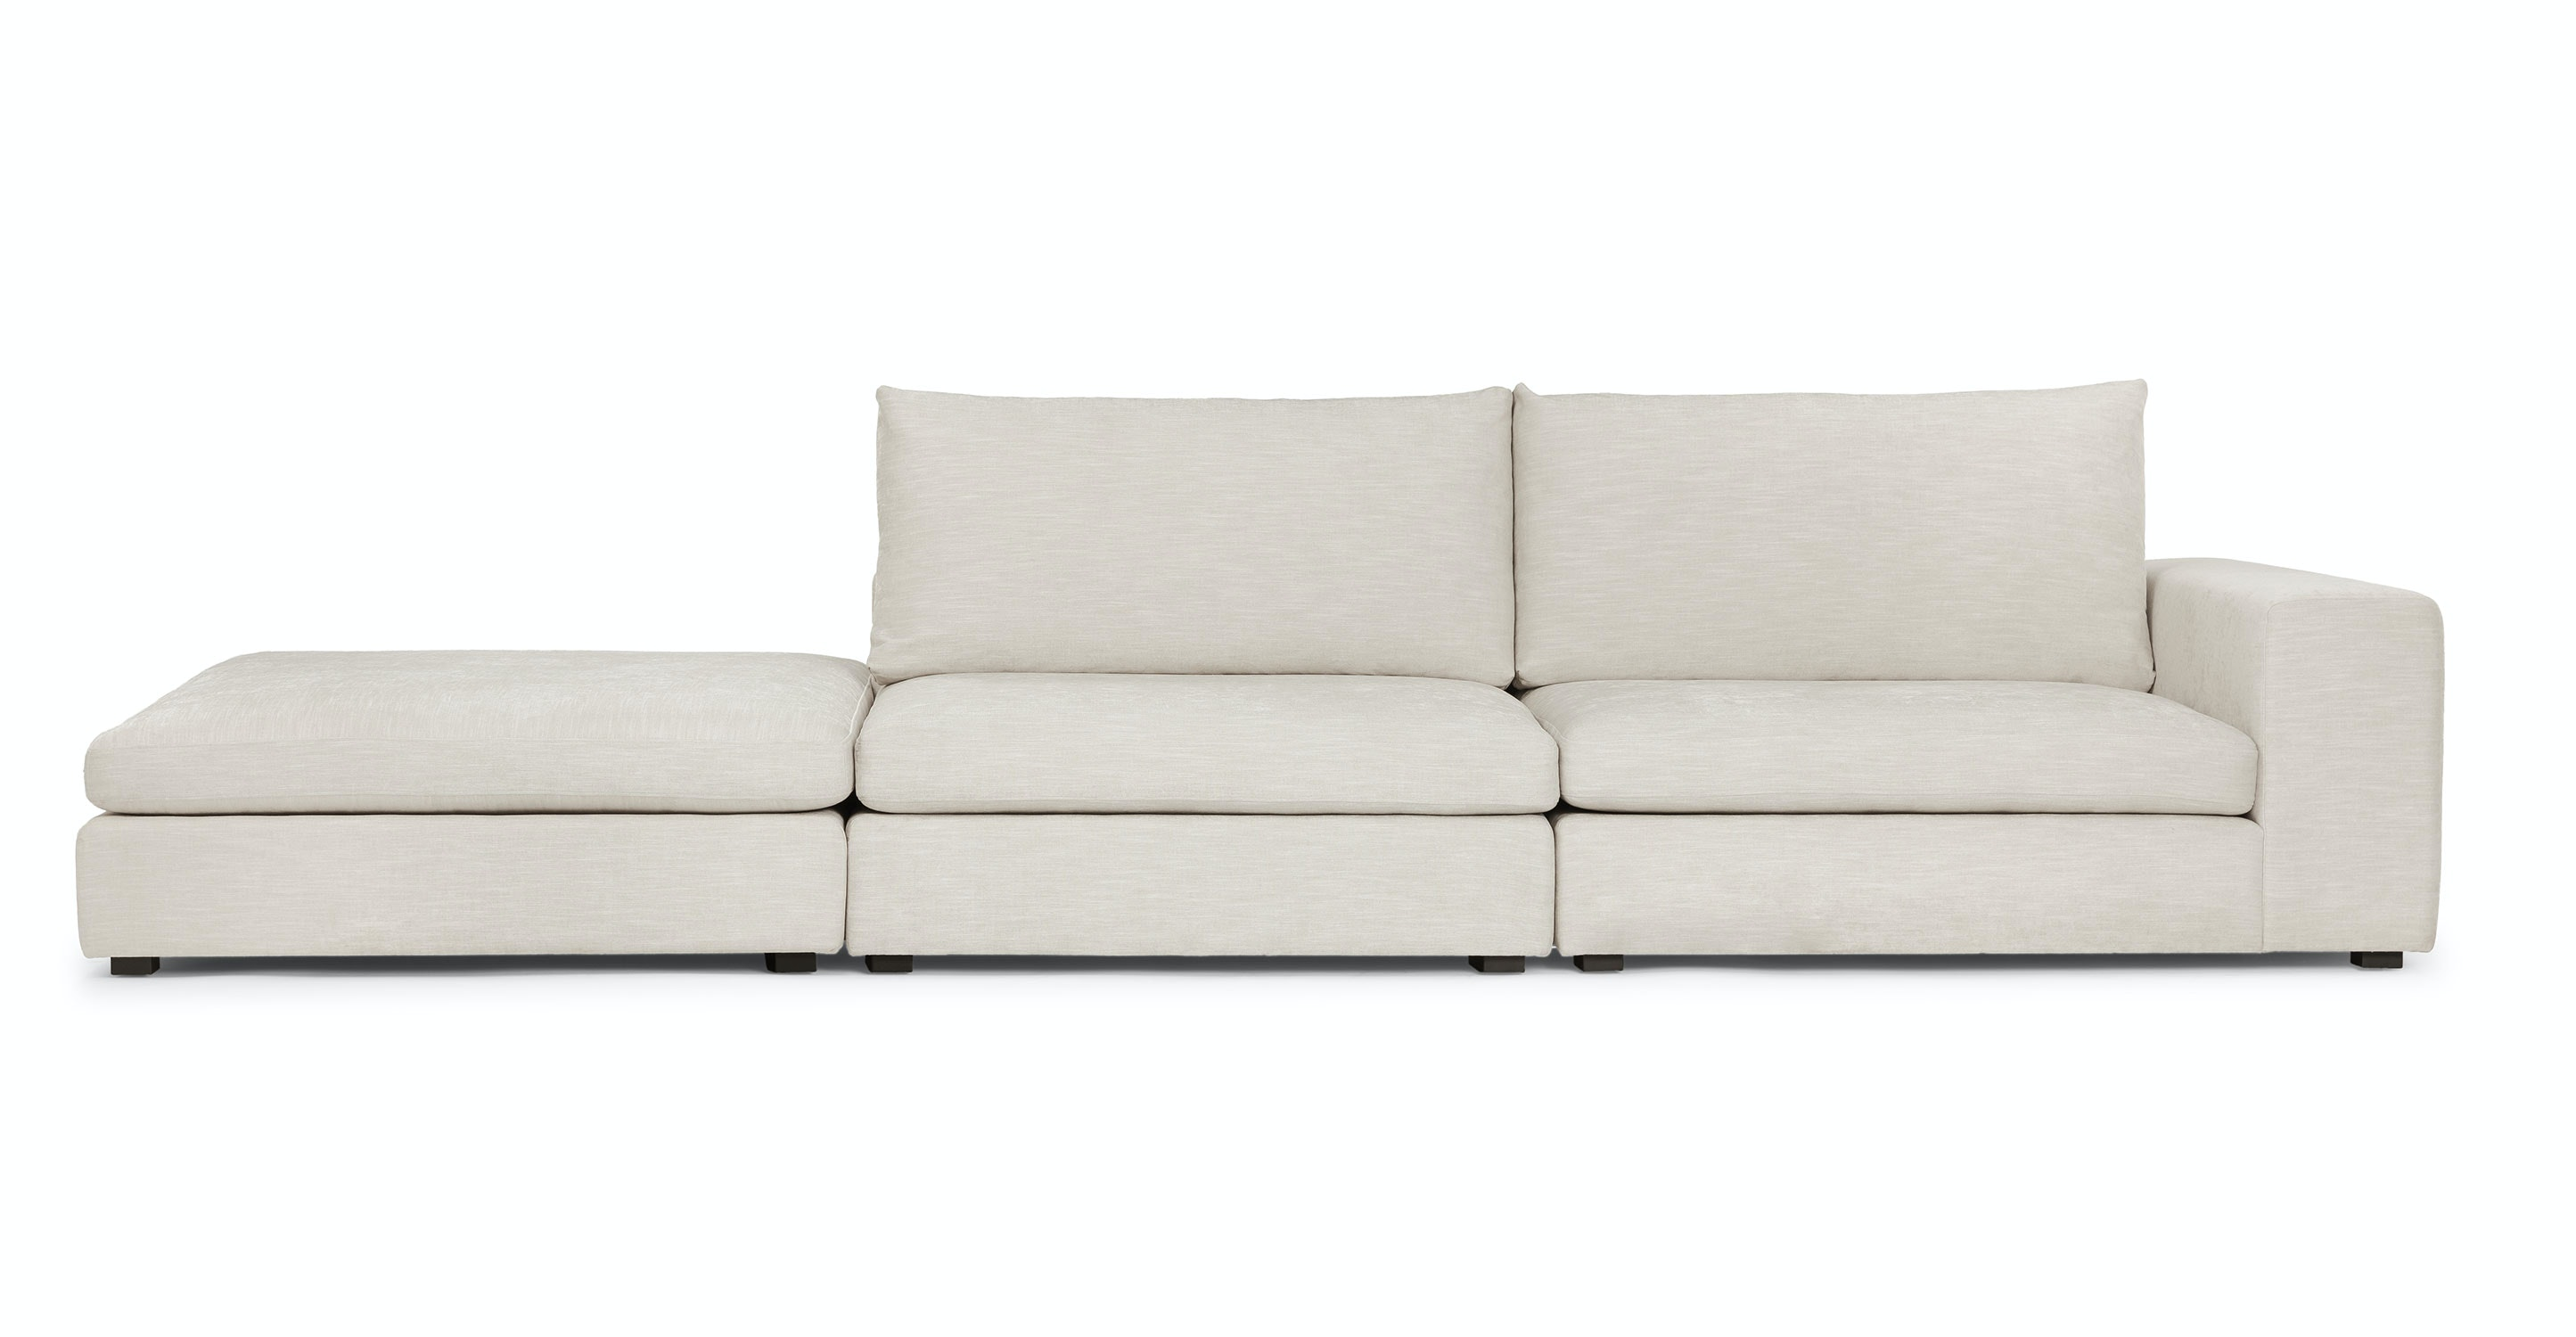 Gaba Modular Sofa – Article